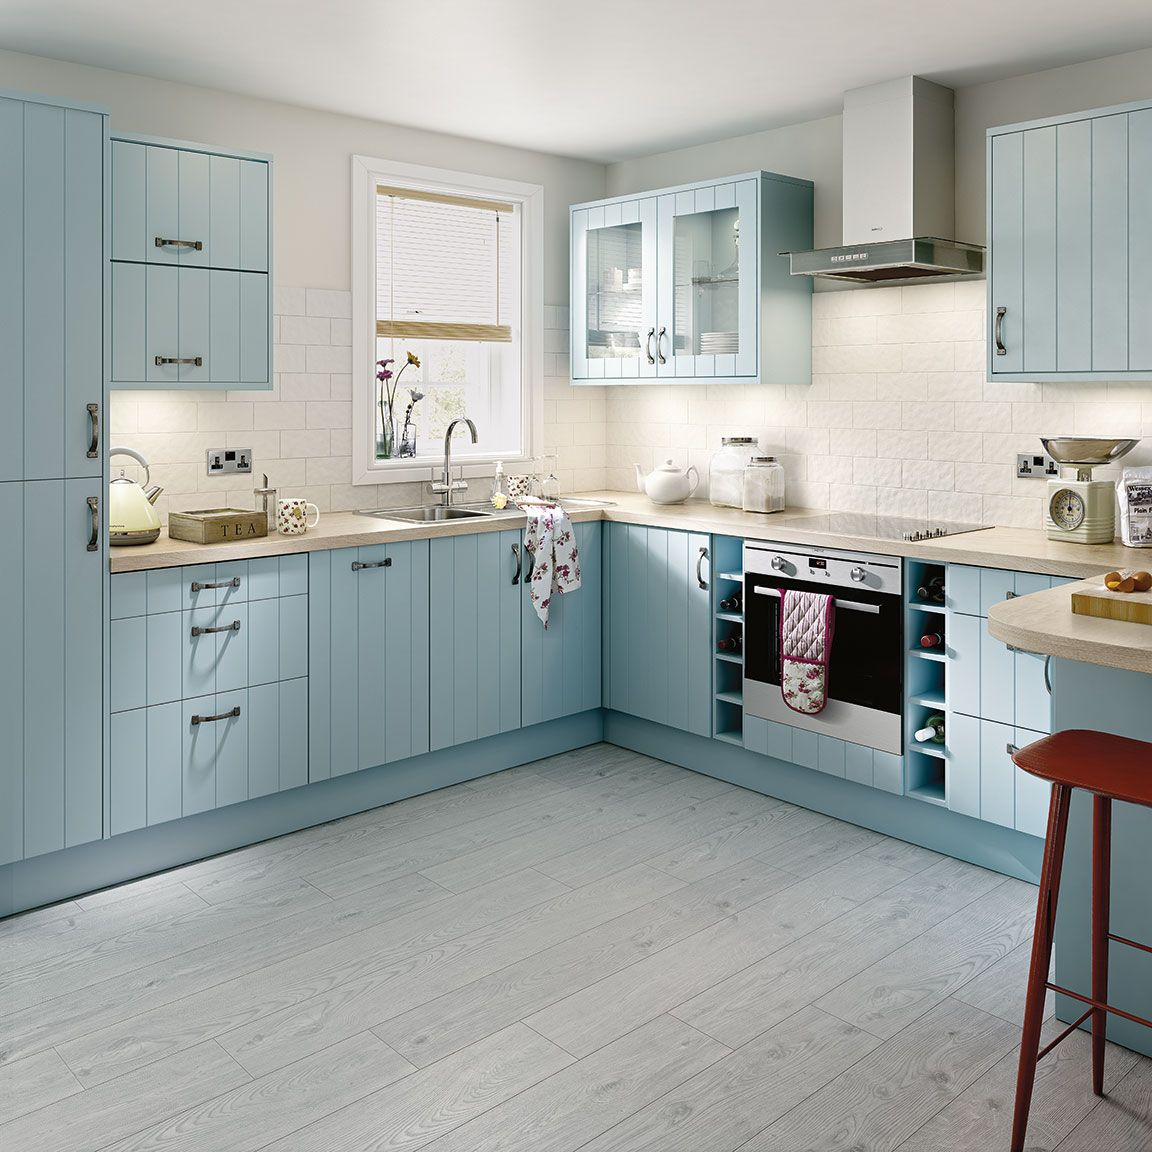 Simply Hygena Turnham Kitchen | Blue kitchens | Pinterest | Kitchens ...